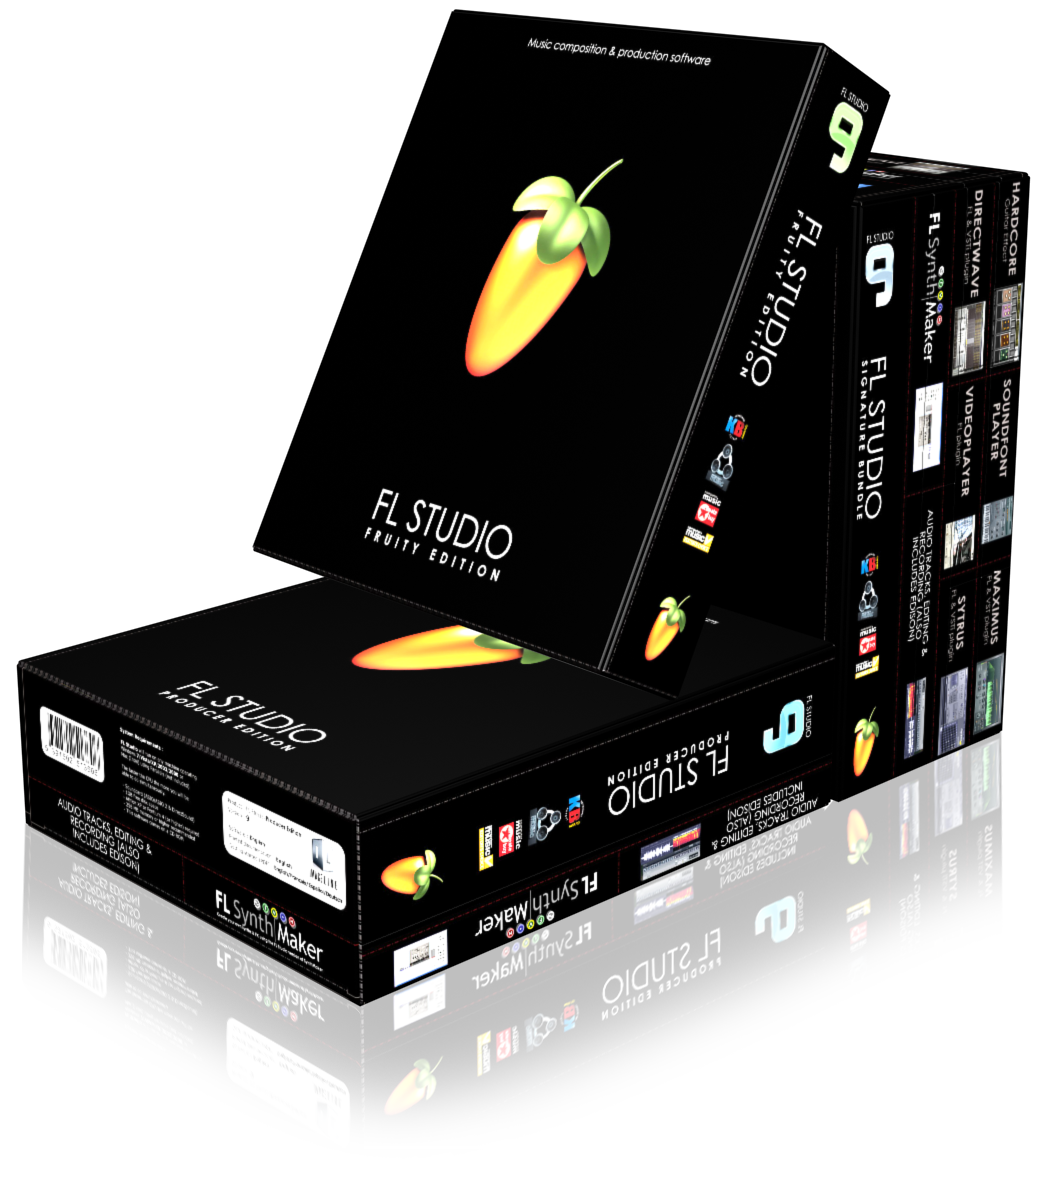 FL Studio 9 box versions